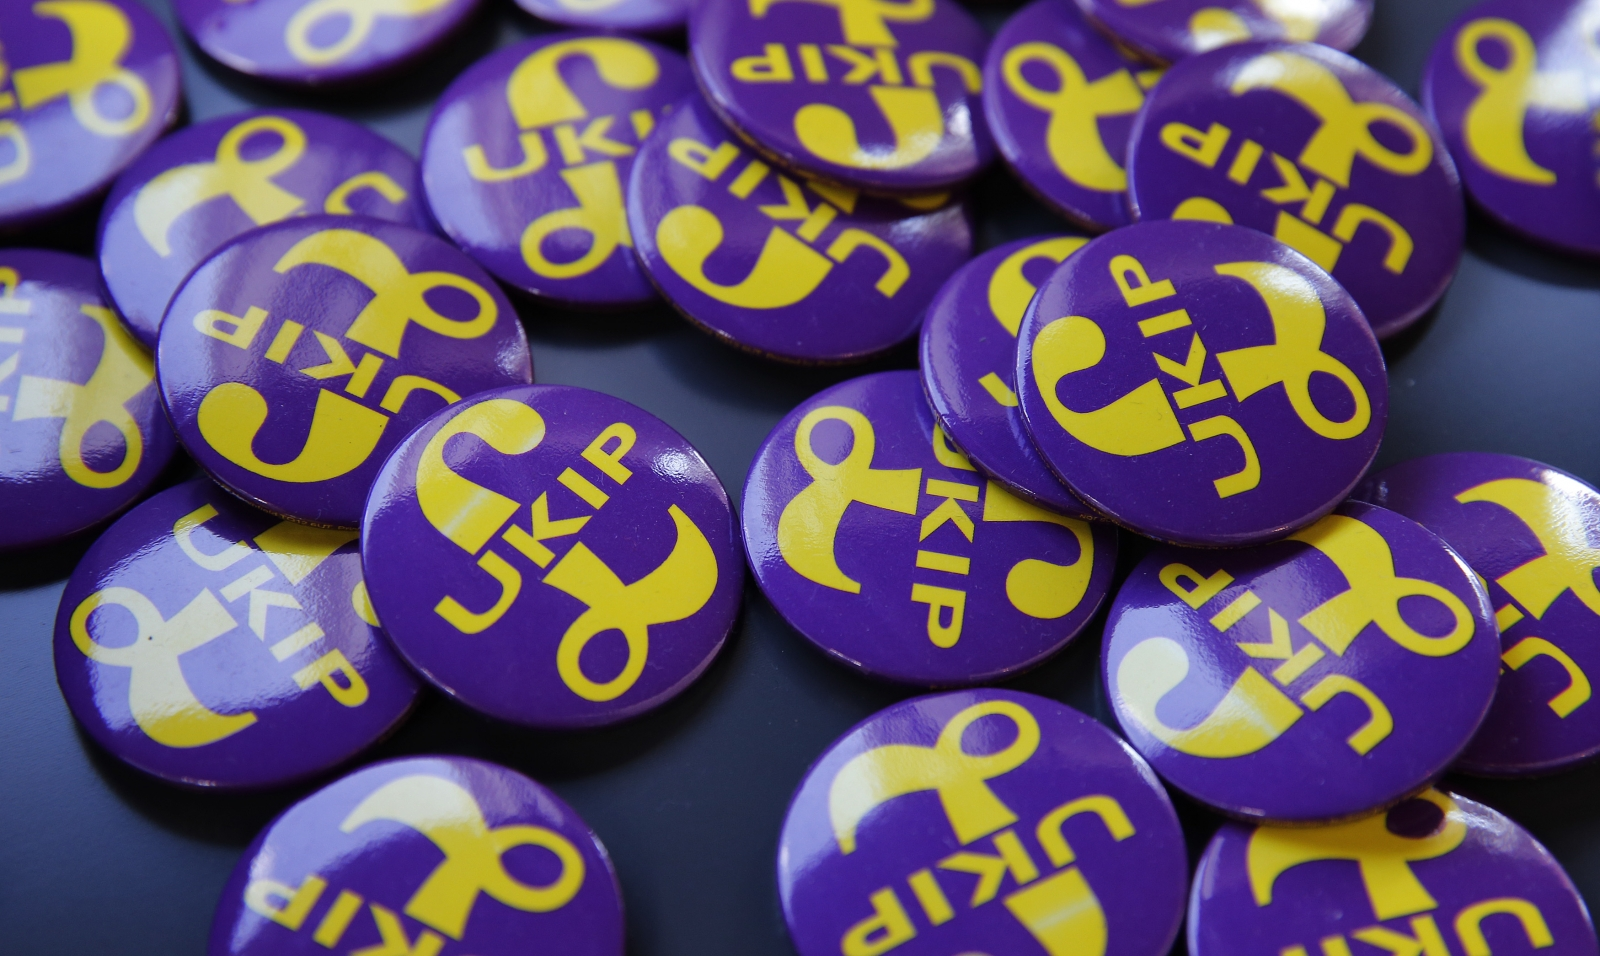 Ukip badges